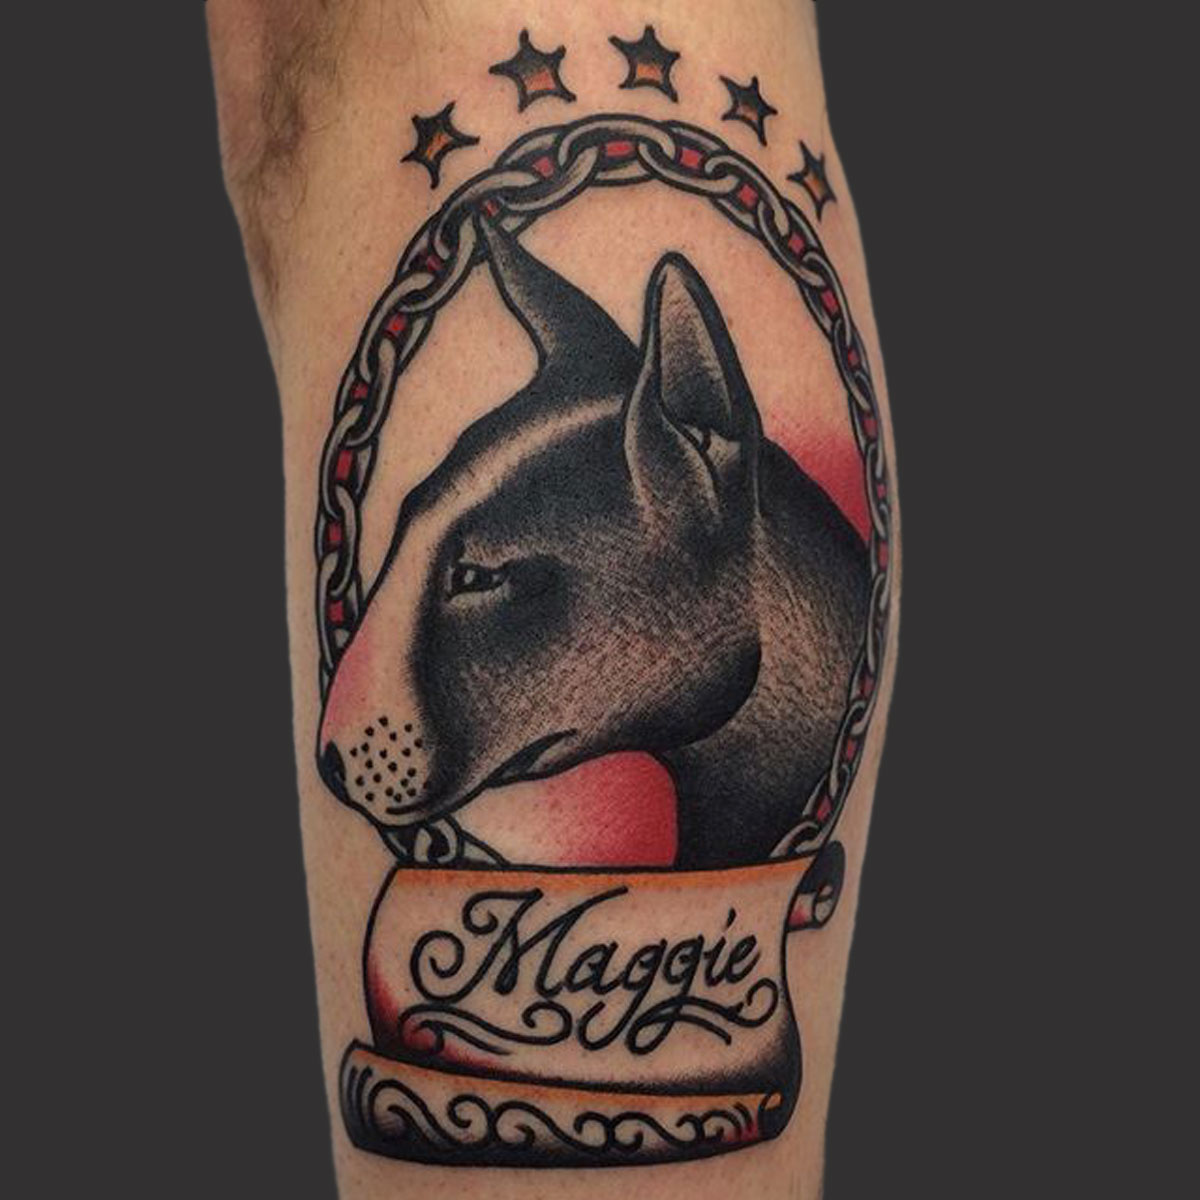 rock-of-ages-tattoo-tom-dog